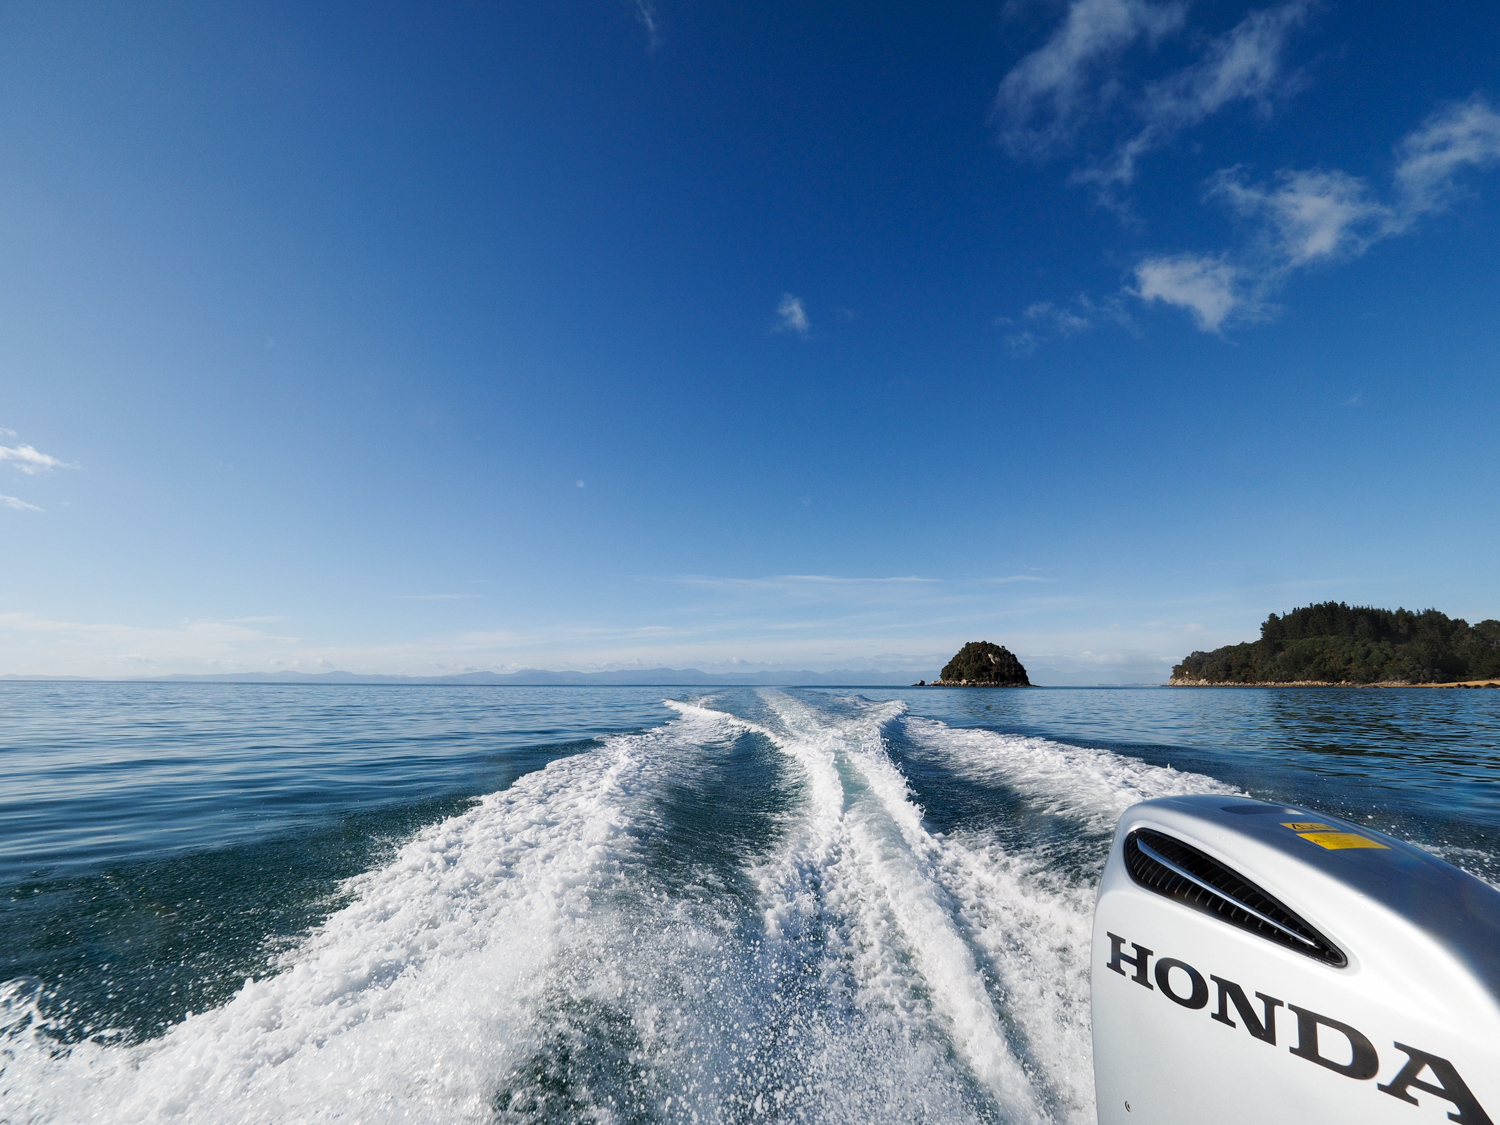 Bound for Bark Bay in Abel Tasman National Park, Nelson, NZ. 27 Aug 2016